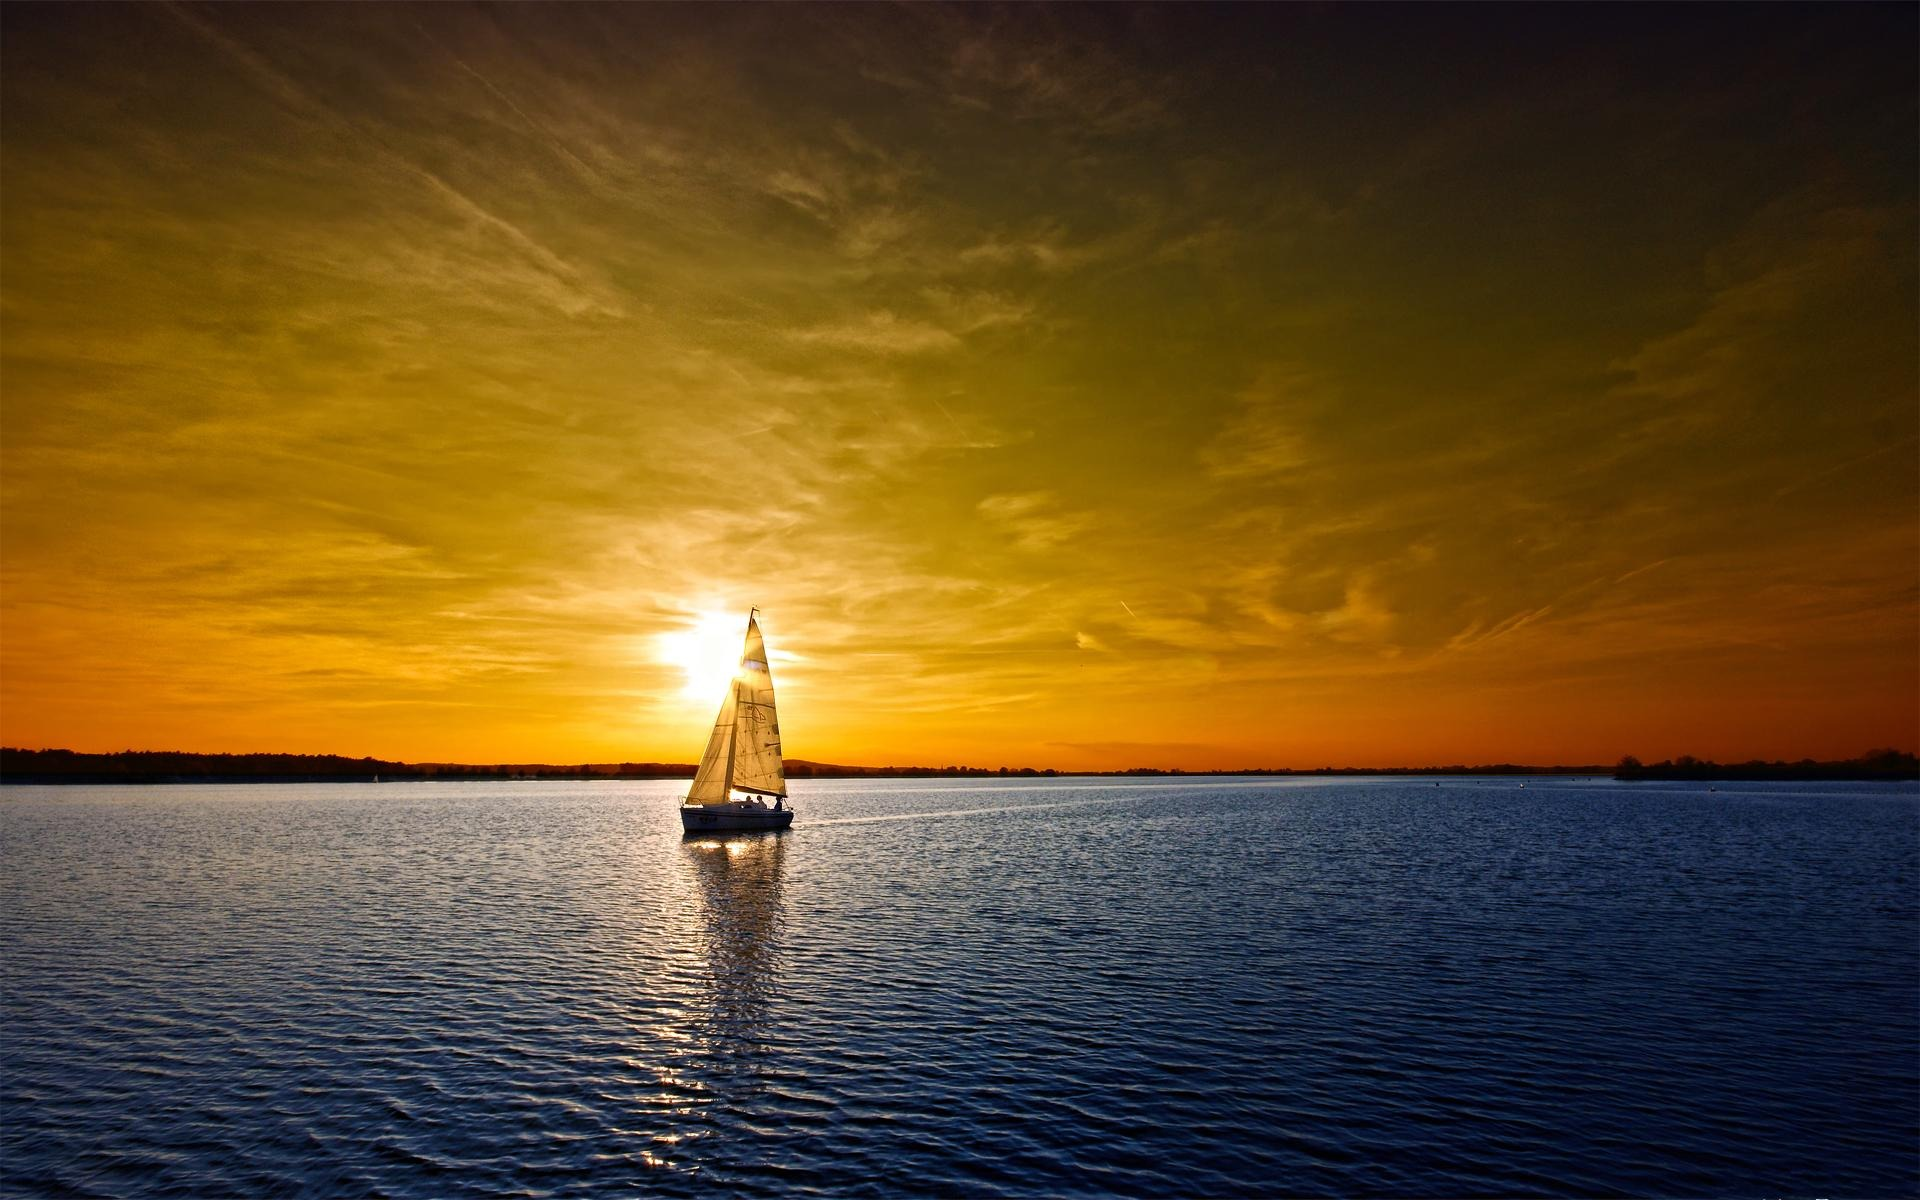 Beach wallpapers Sailboat Sunset Wallpaper